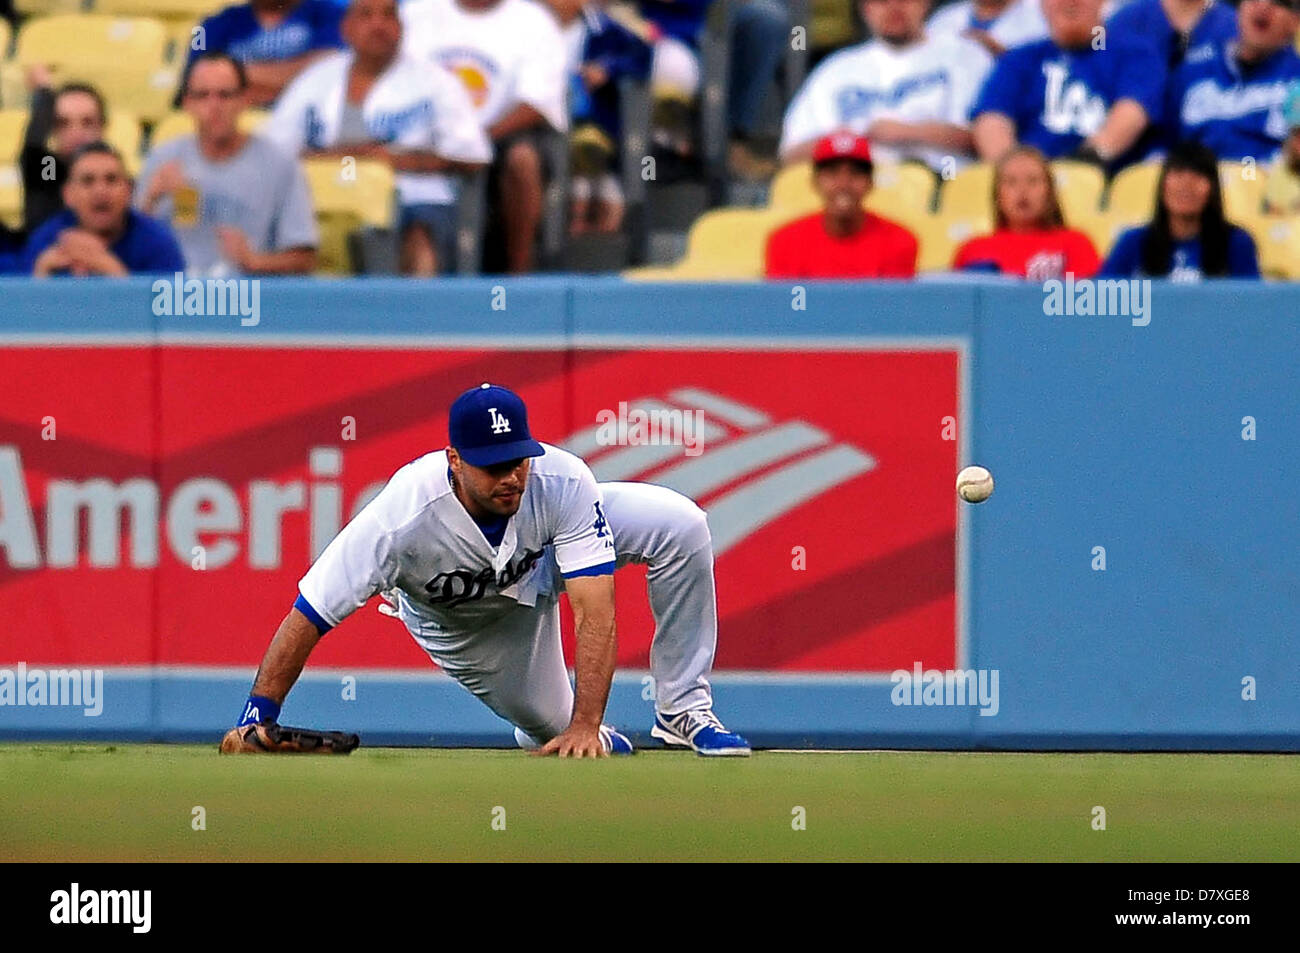 Los Angeles, CA. USA. May 14, 2013. Los Angeles Dodgers right fielder Andre Ethier #16 slides and is unable to make Stock Photo